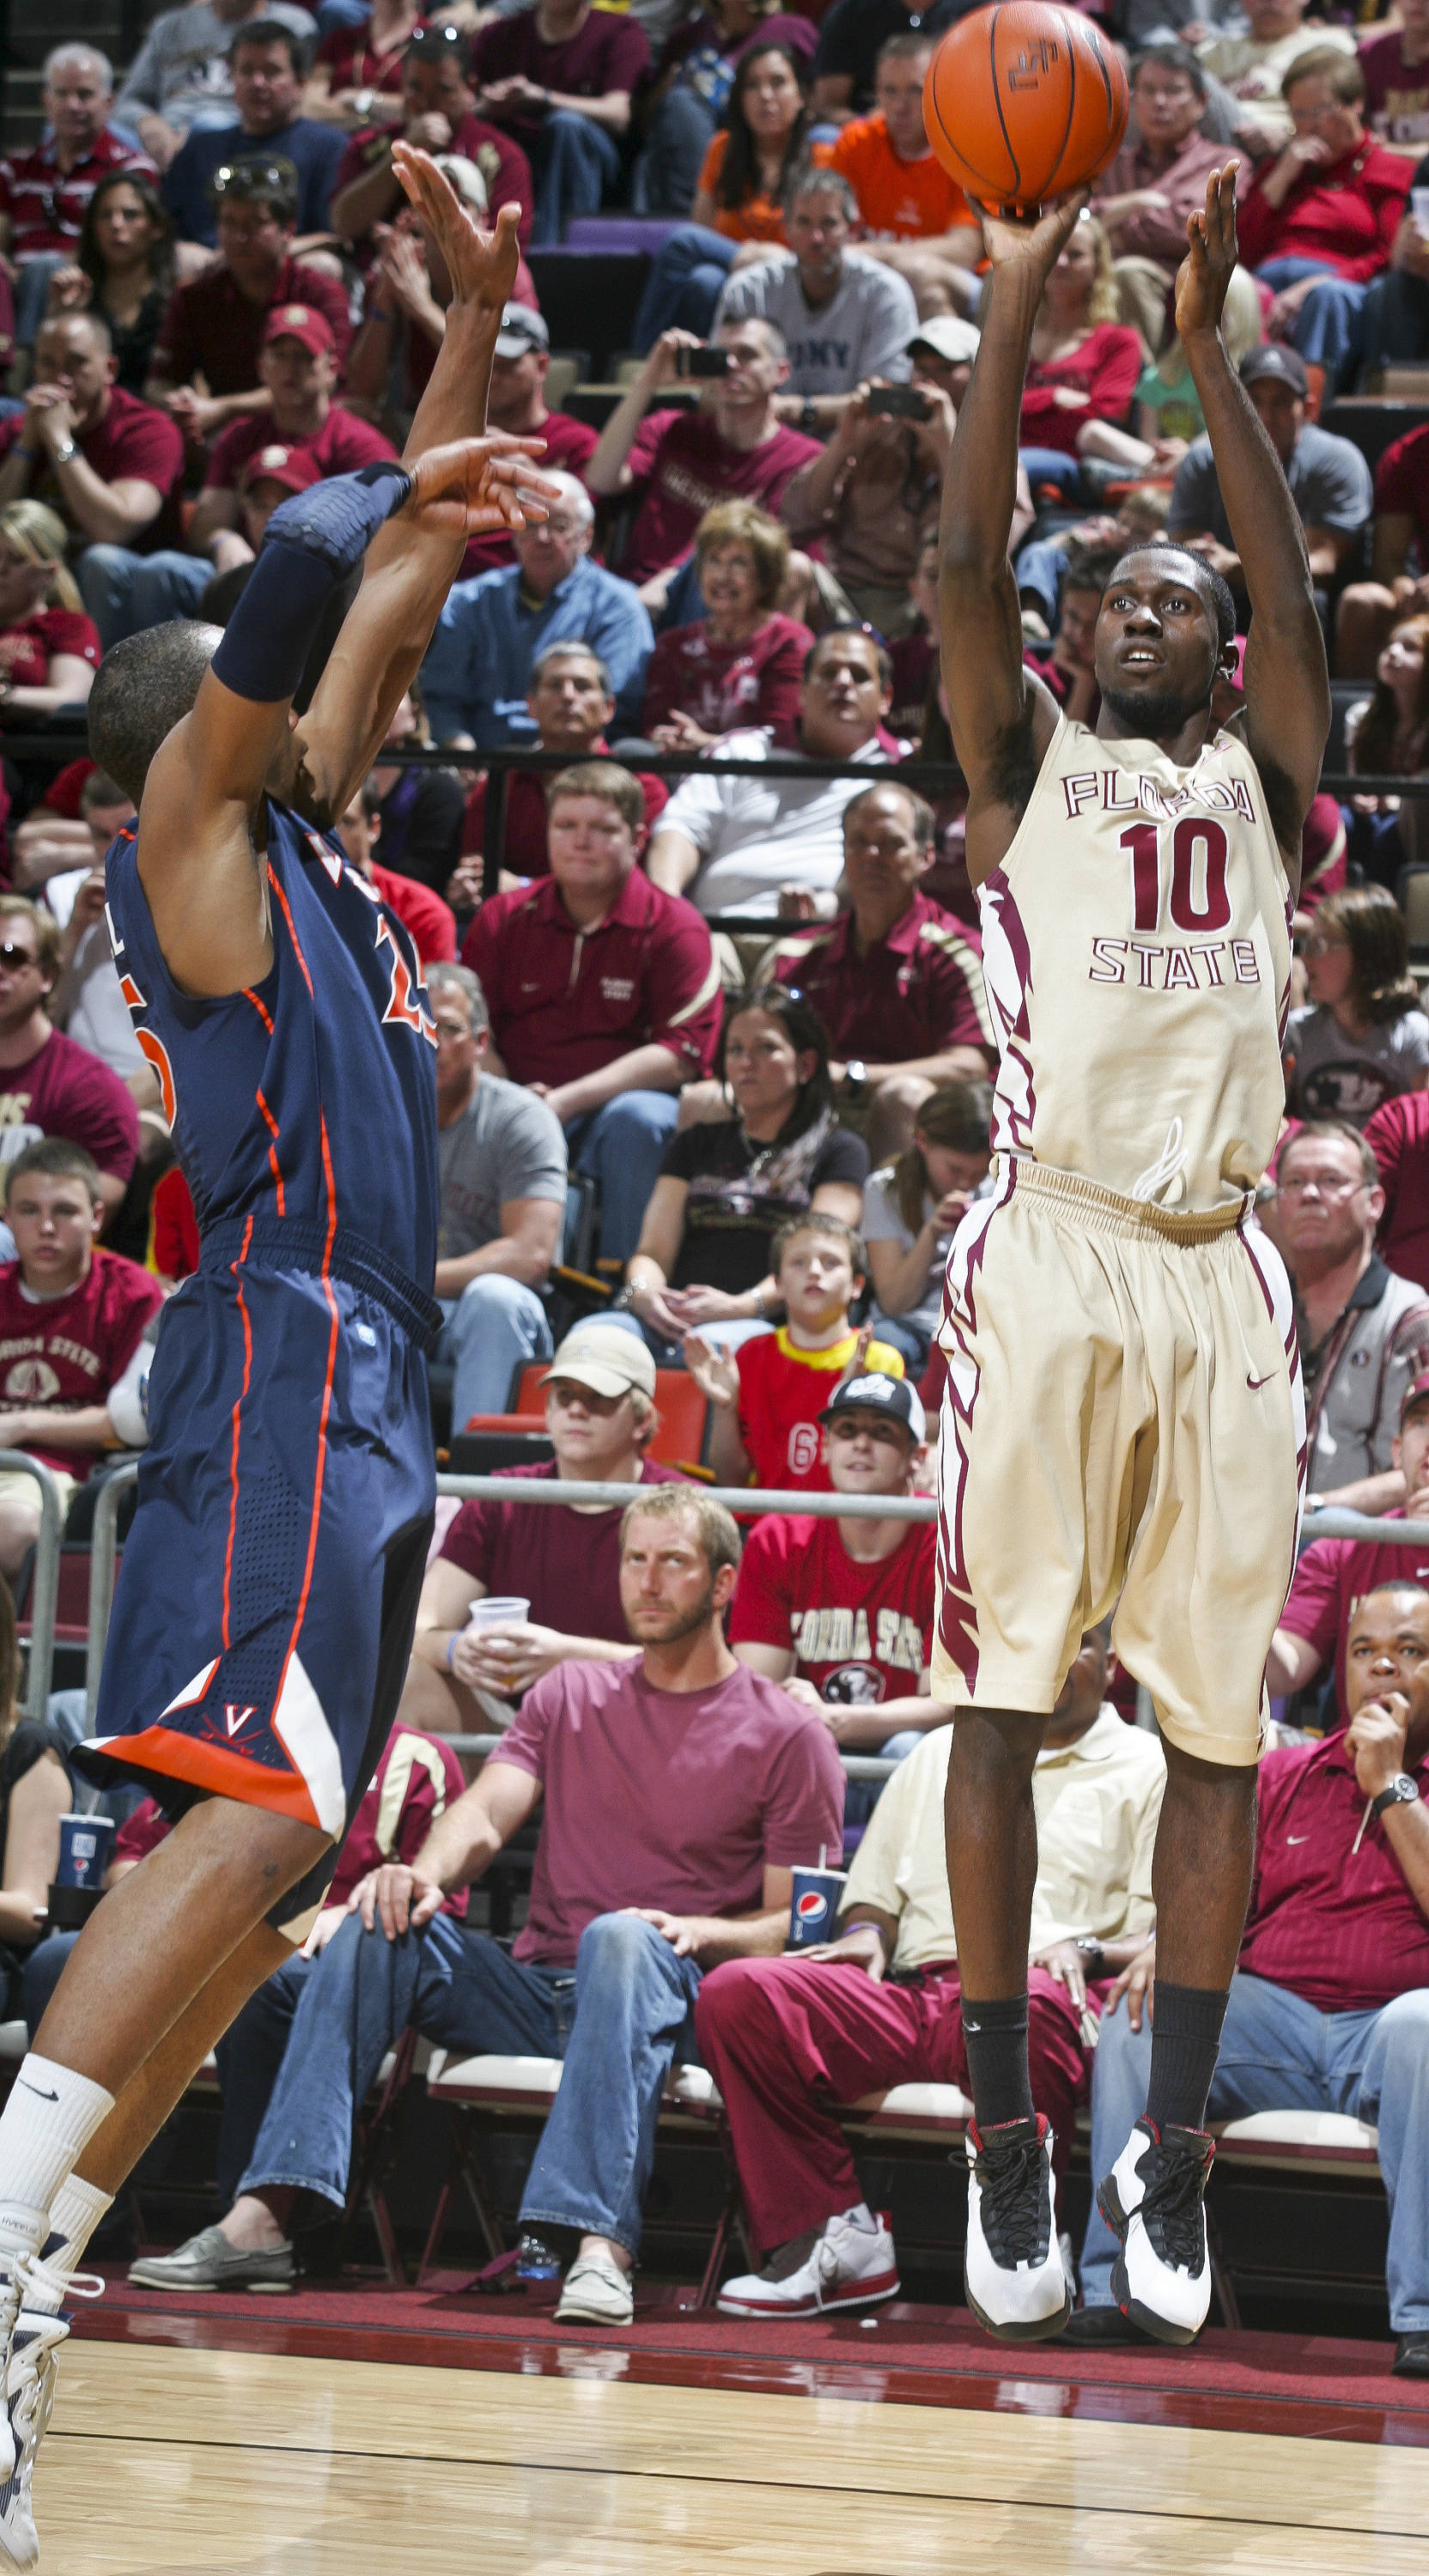 Florida State's Okaro White (10) shoots from the corner over Virginia's Akil Mitchell (25) in the first half of an NCAA college basketball game on Saturday, Feb. 4, 2012, in Tallahassee, Fla. Florida State won 58-55. (AP Photo/Phil Sears)